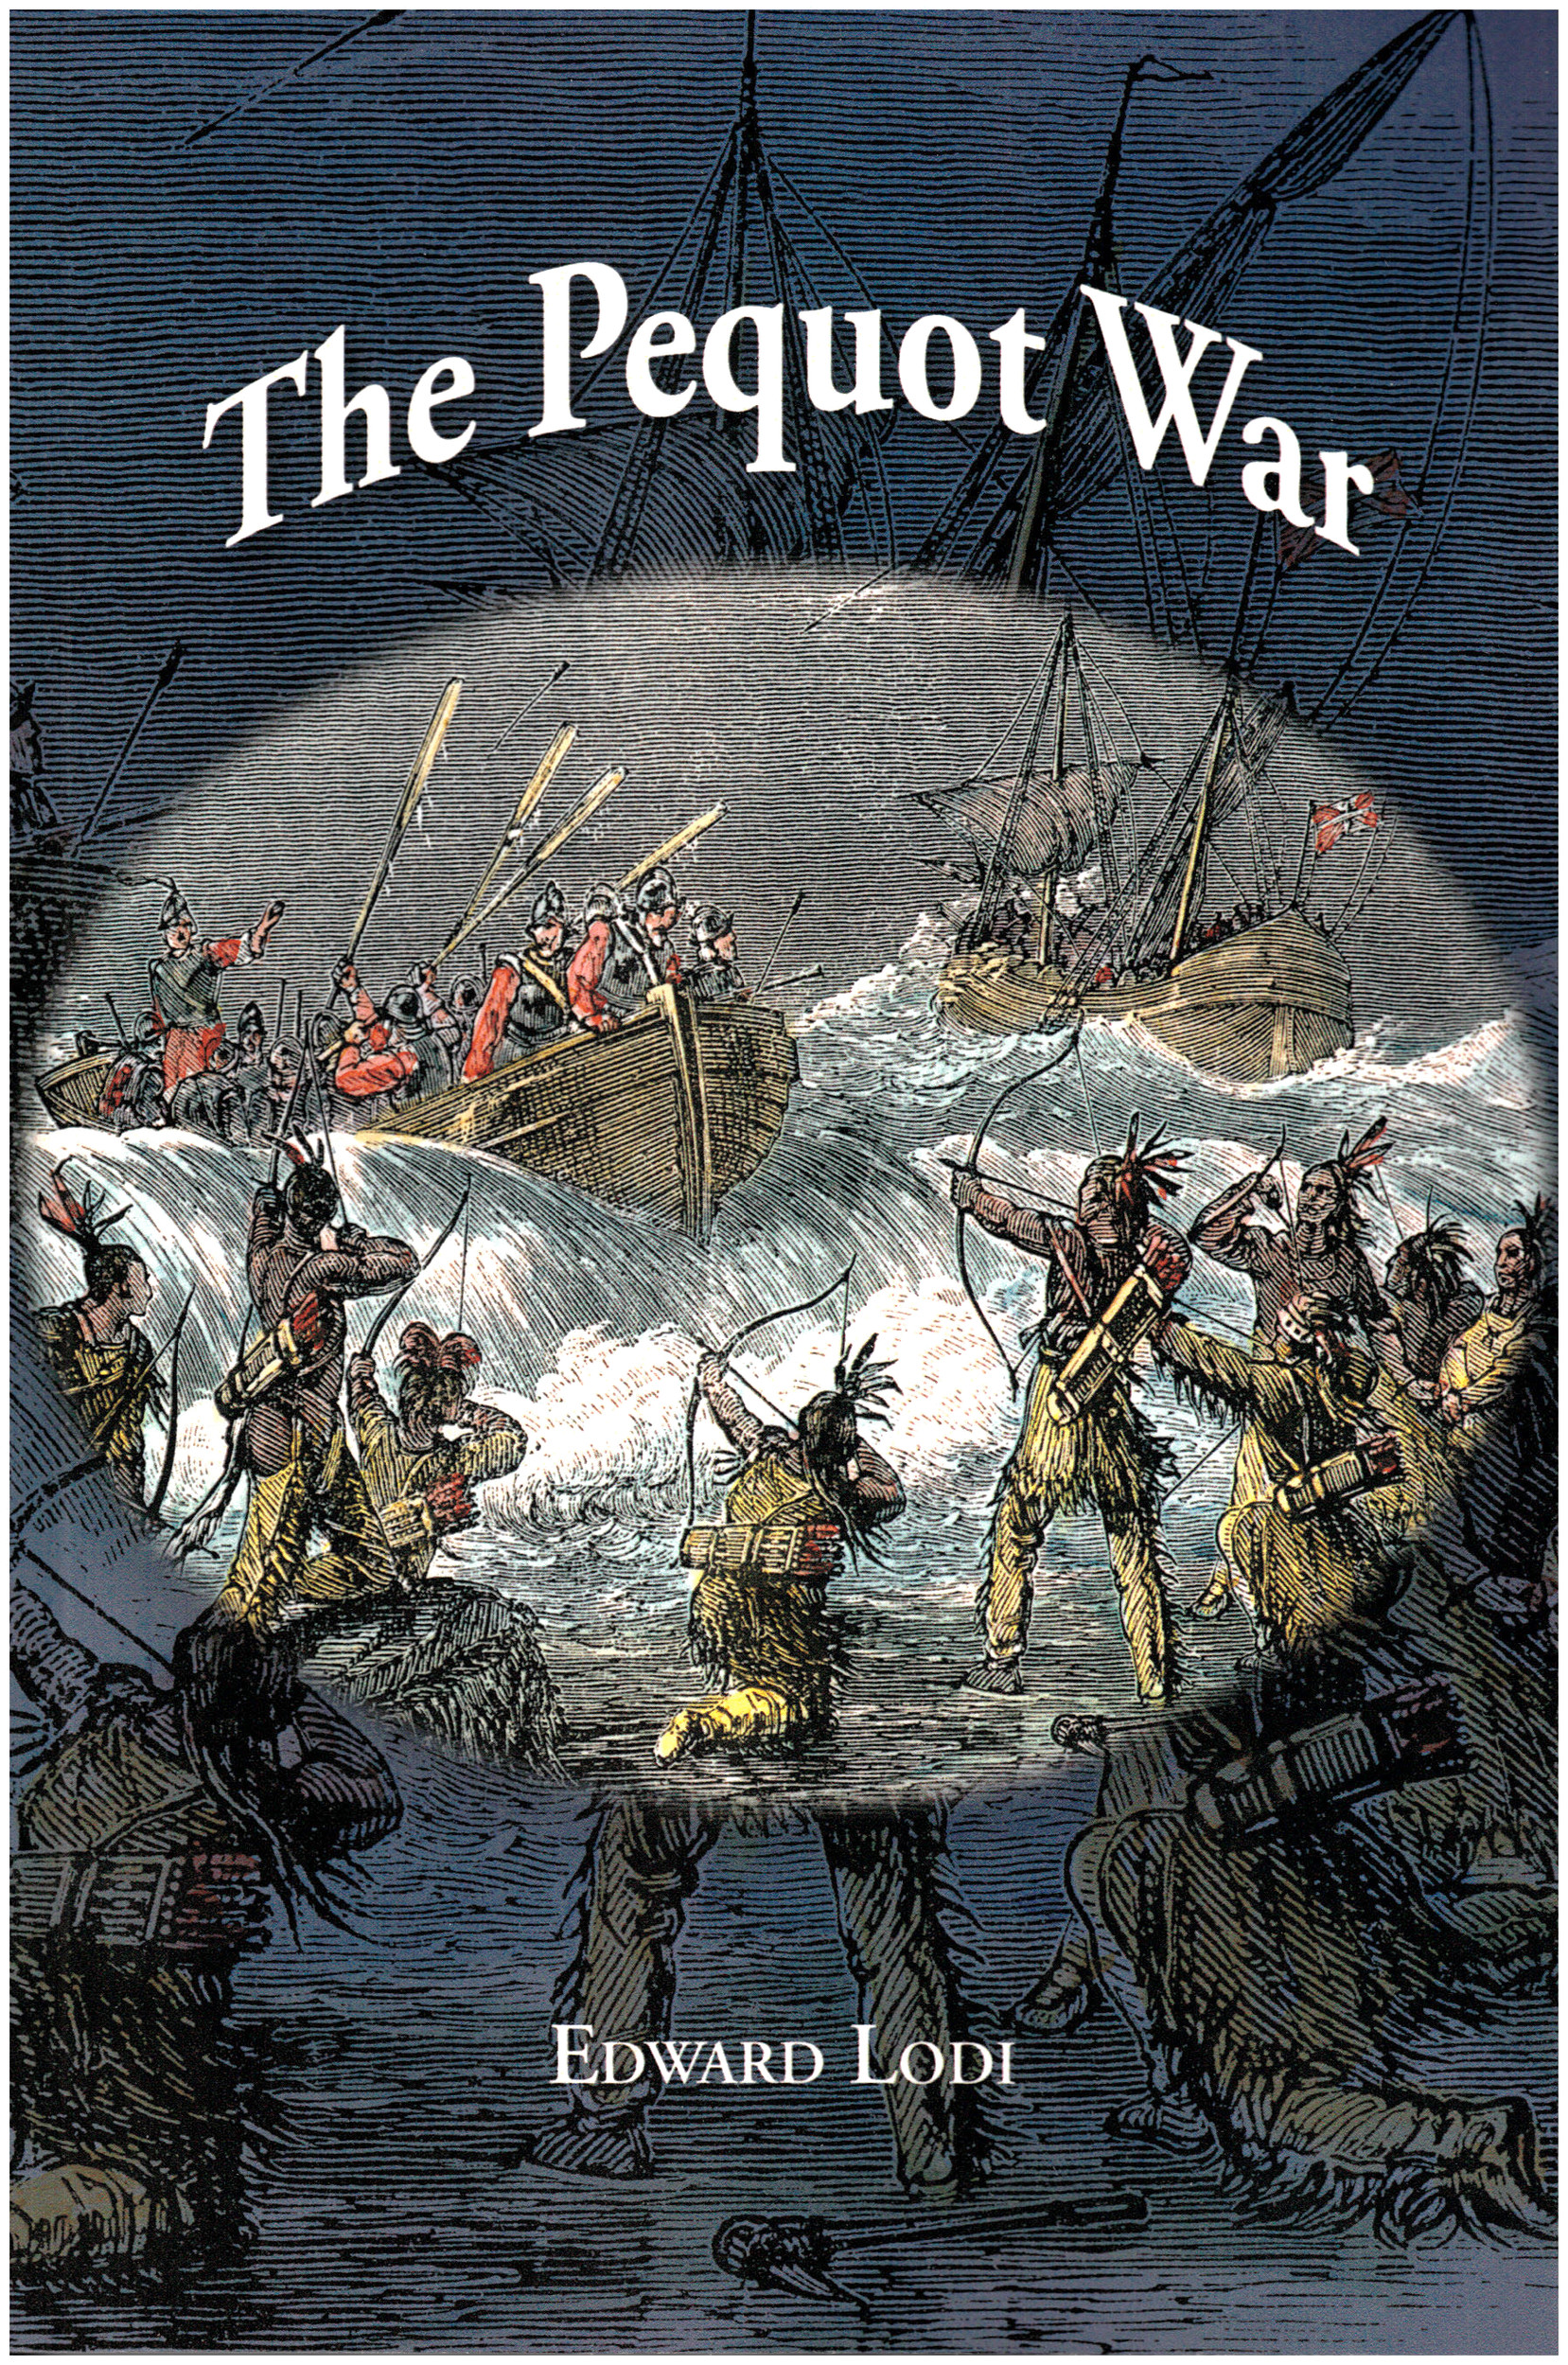 Come to the Brownell Library in Little Compton on Thursday, August 17th, at 2:00 pm to hear Edward Lodi talk about his latest book, The Pequot War.